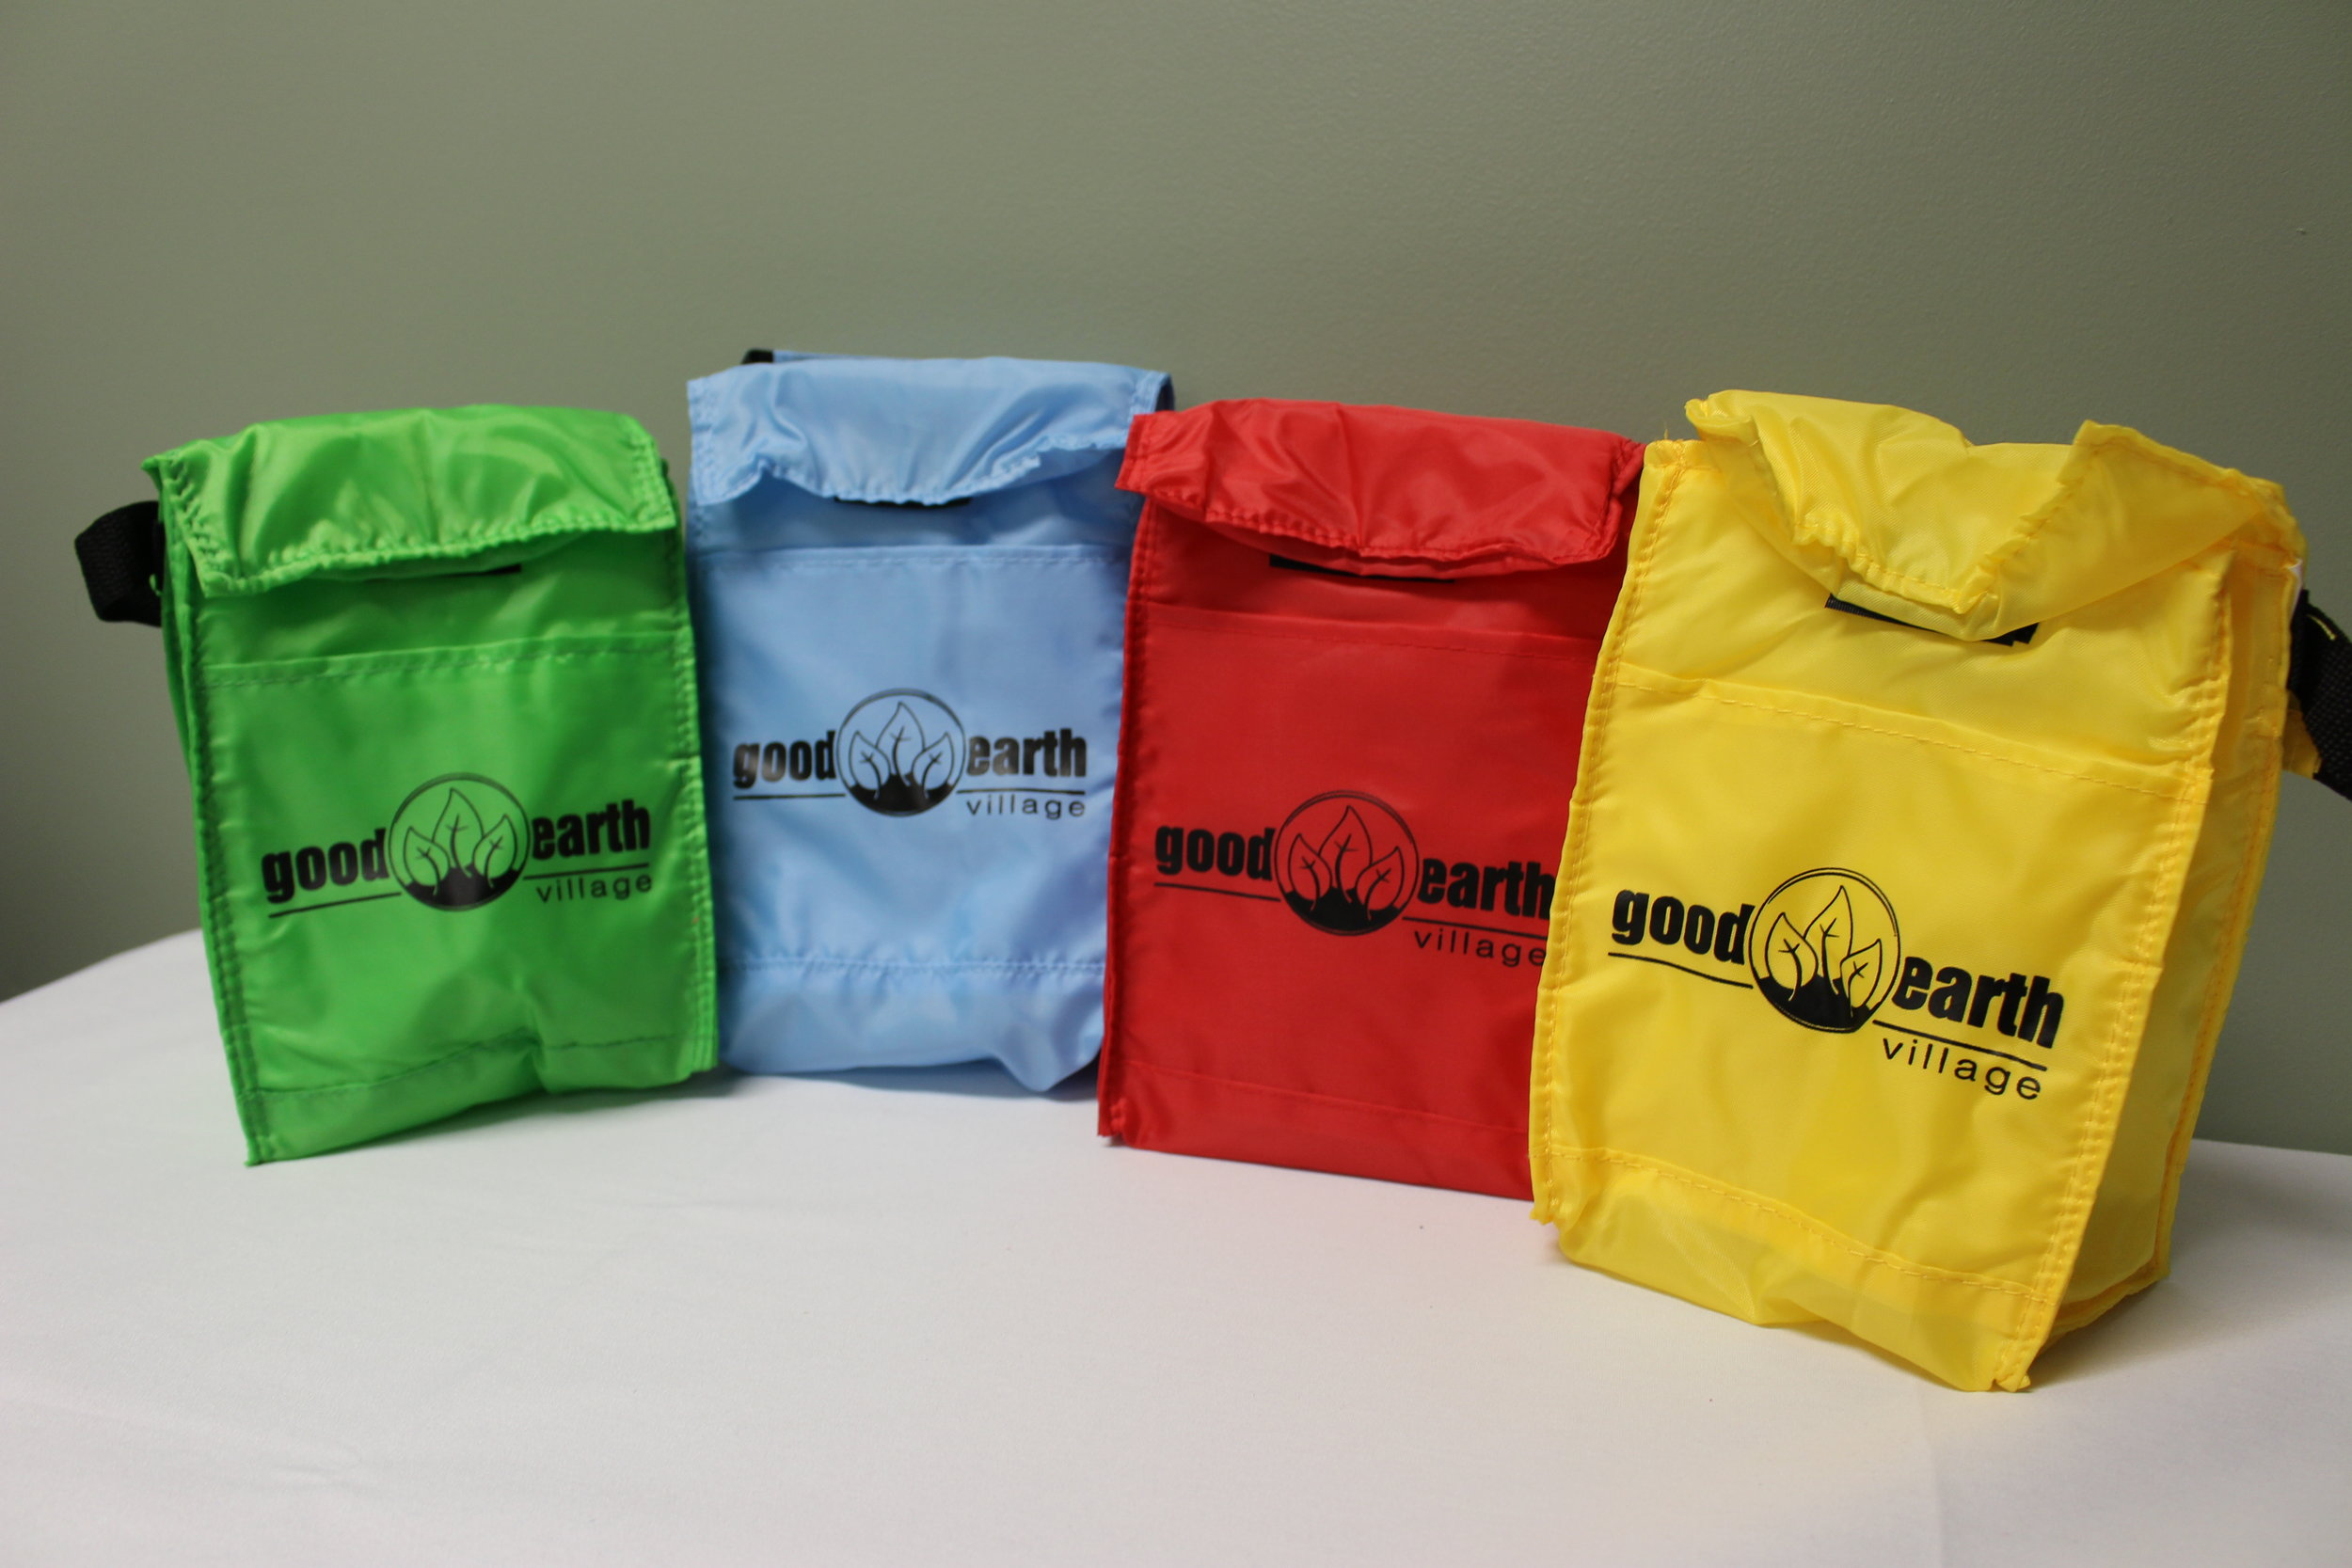 Item:  Insulated Lunch Cooler  Colors:  Green, Carolina Blue, Red, Yellow  Price:  $7